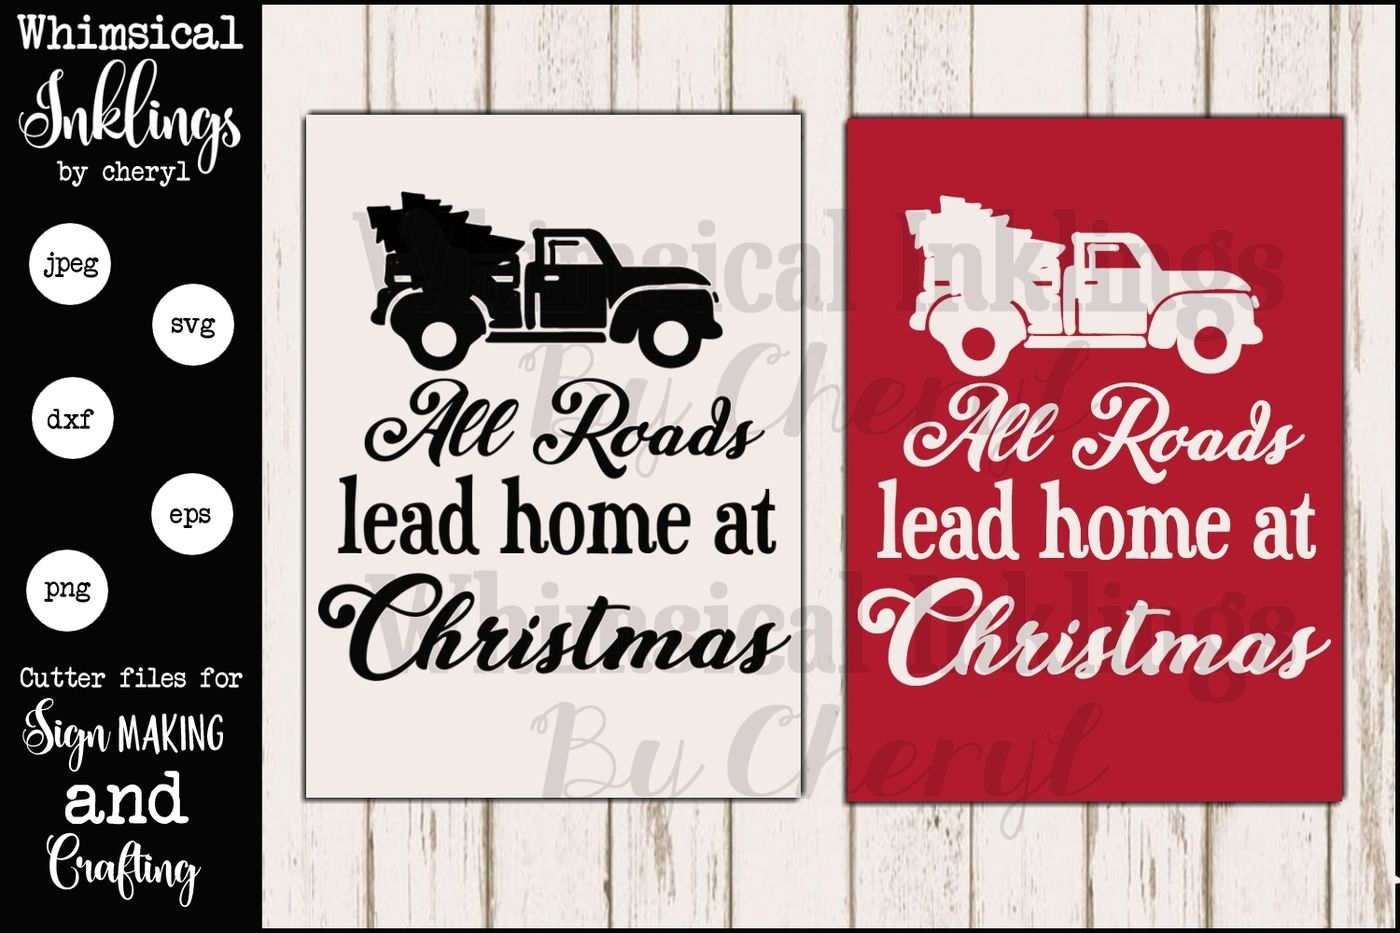 All Roads Lead Home Christmas Sign Svg By Whimsical Inklings